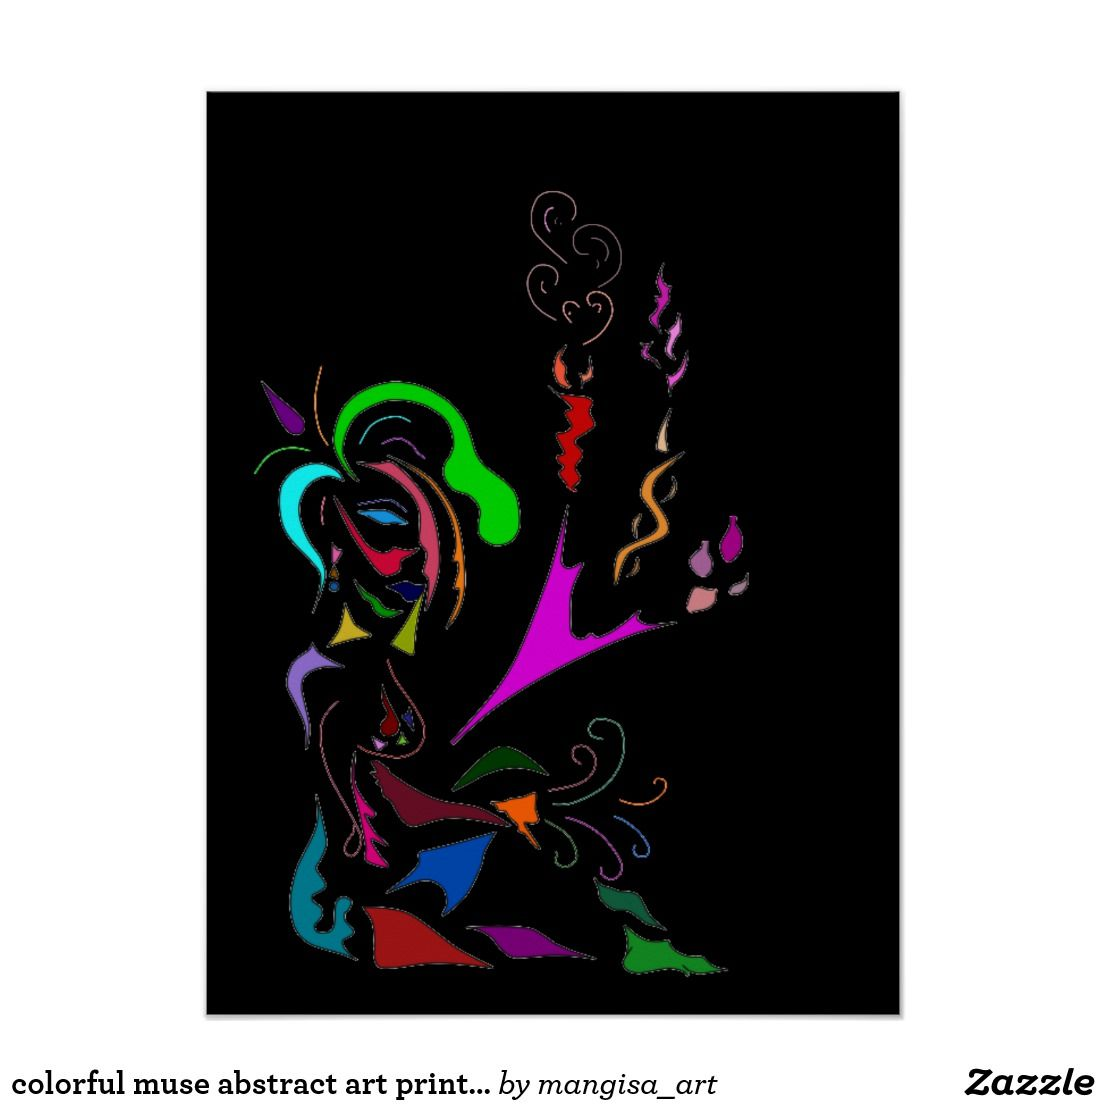 Zazzle poster design - Colorful Muse Abstract Art Print On Poster